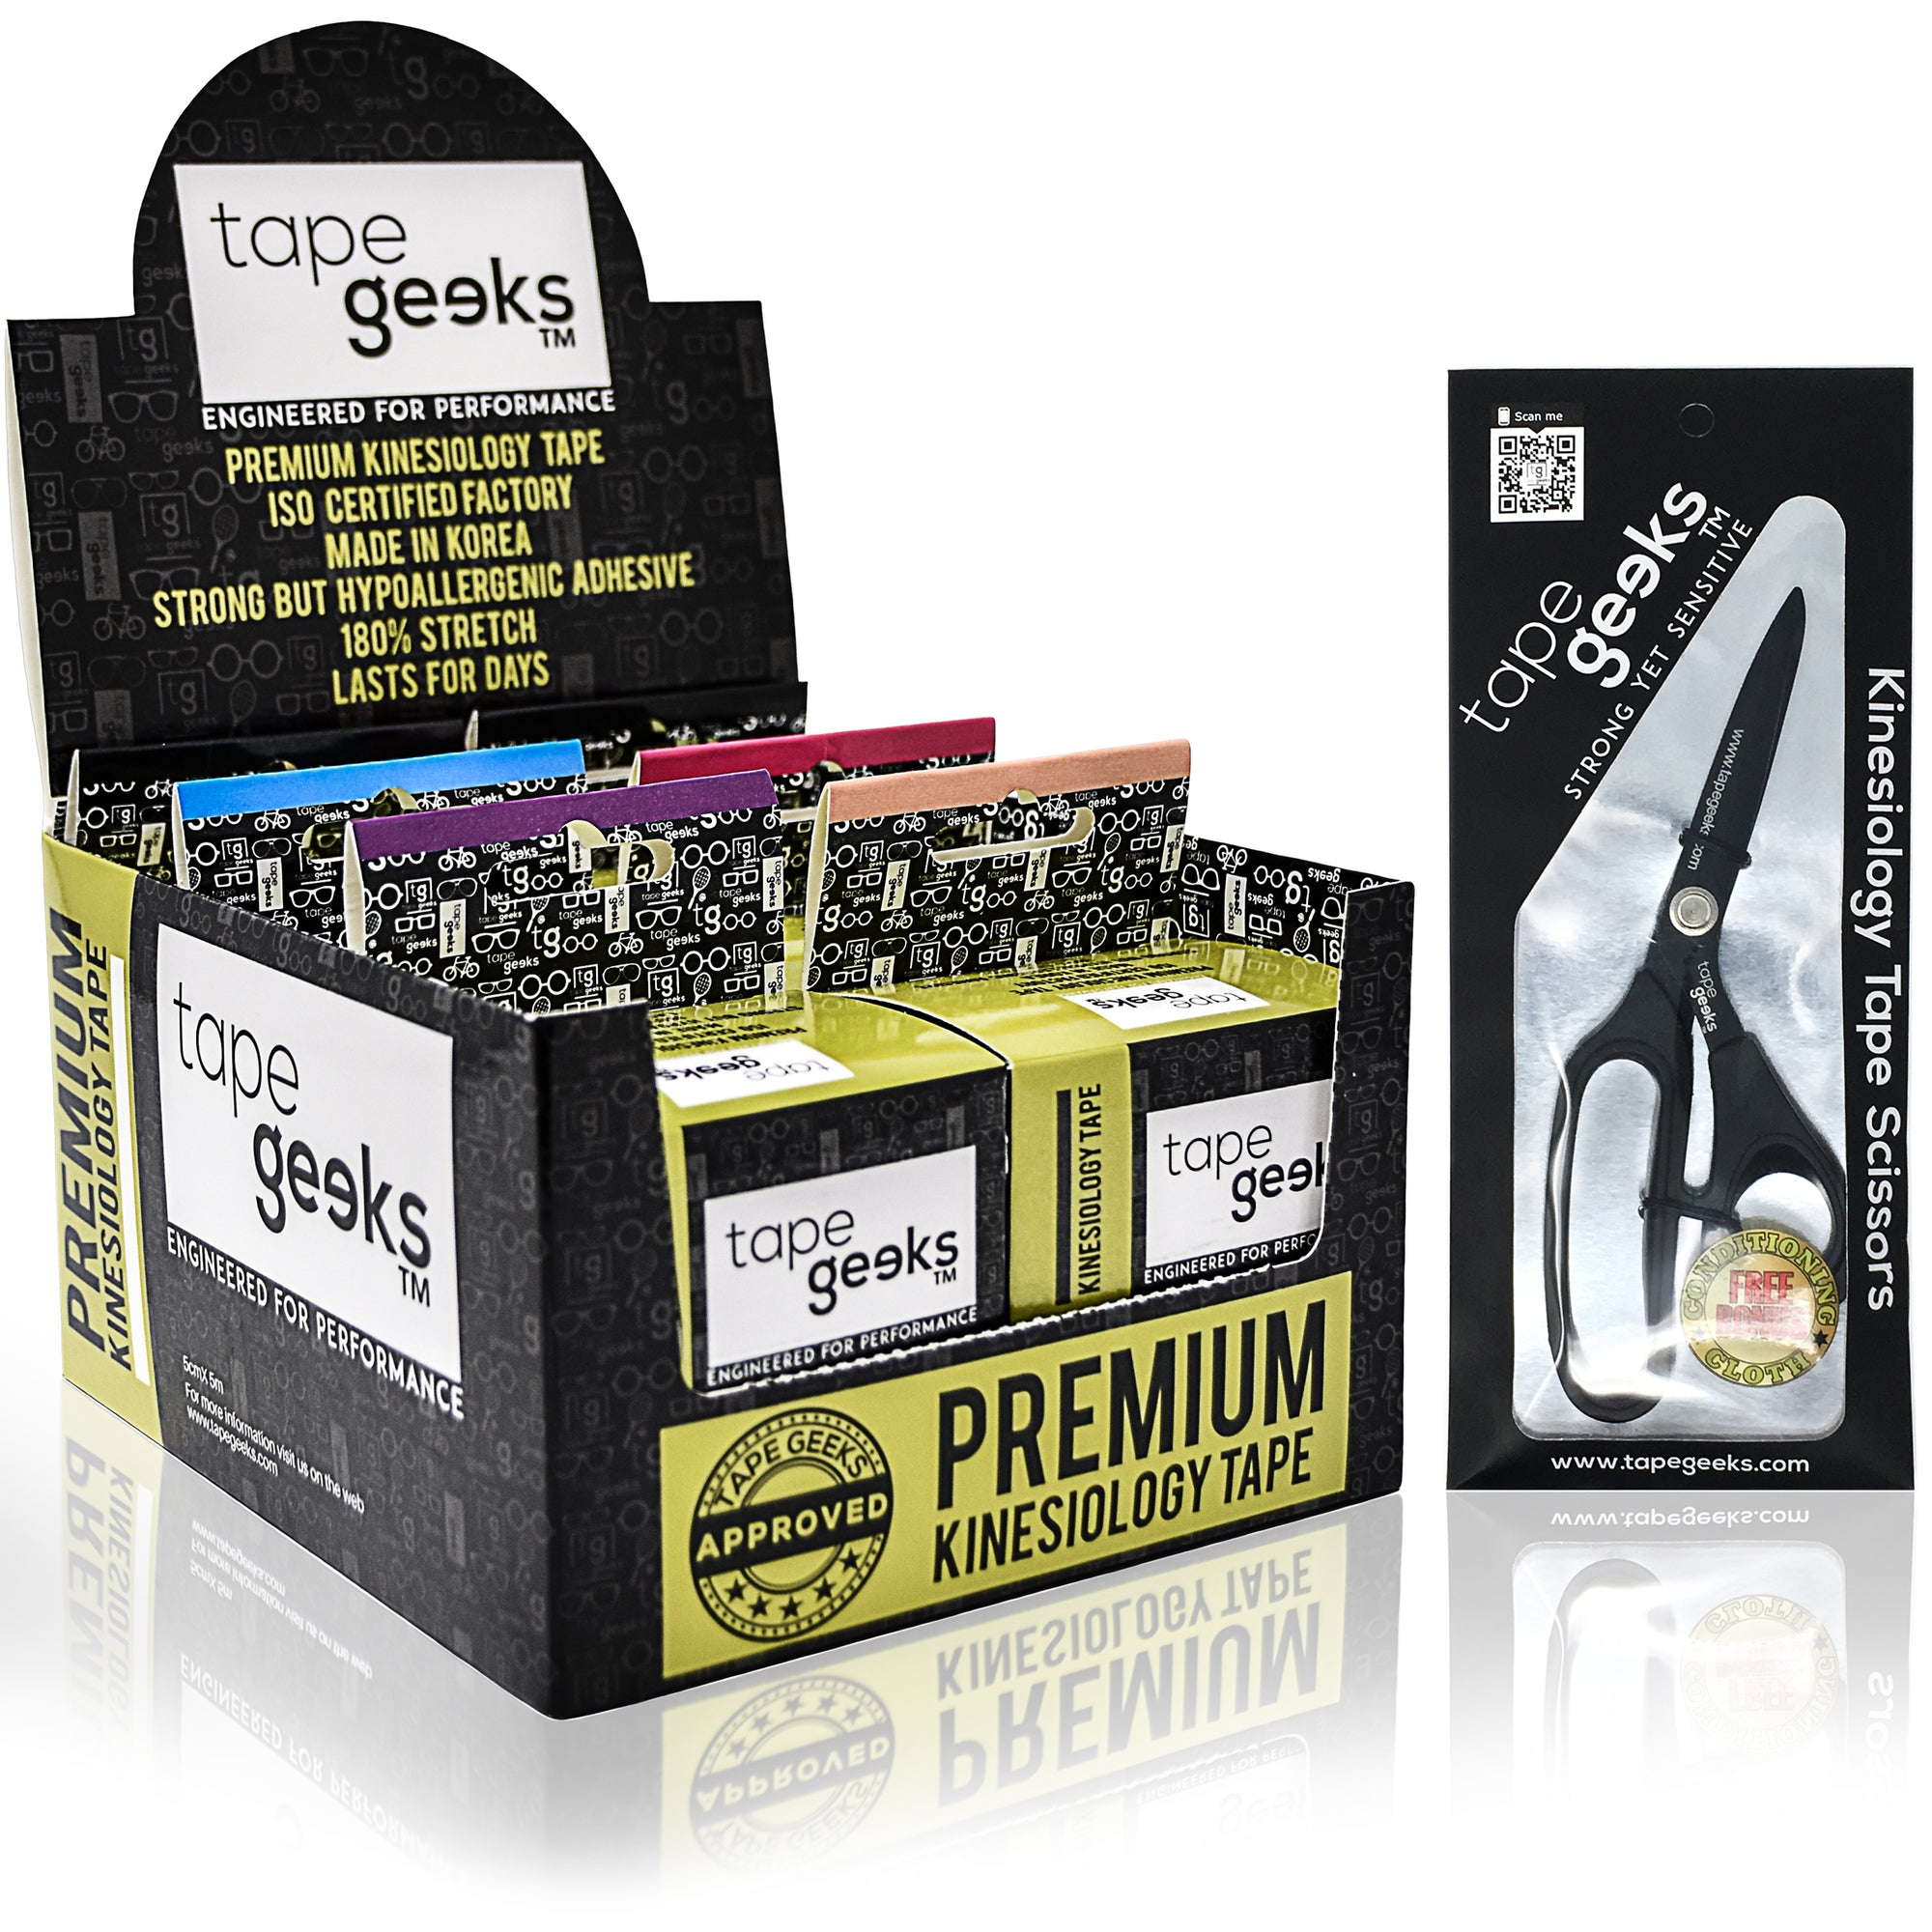 TapeGeeks 6-pack Special plus Scissors Kit